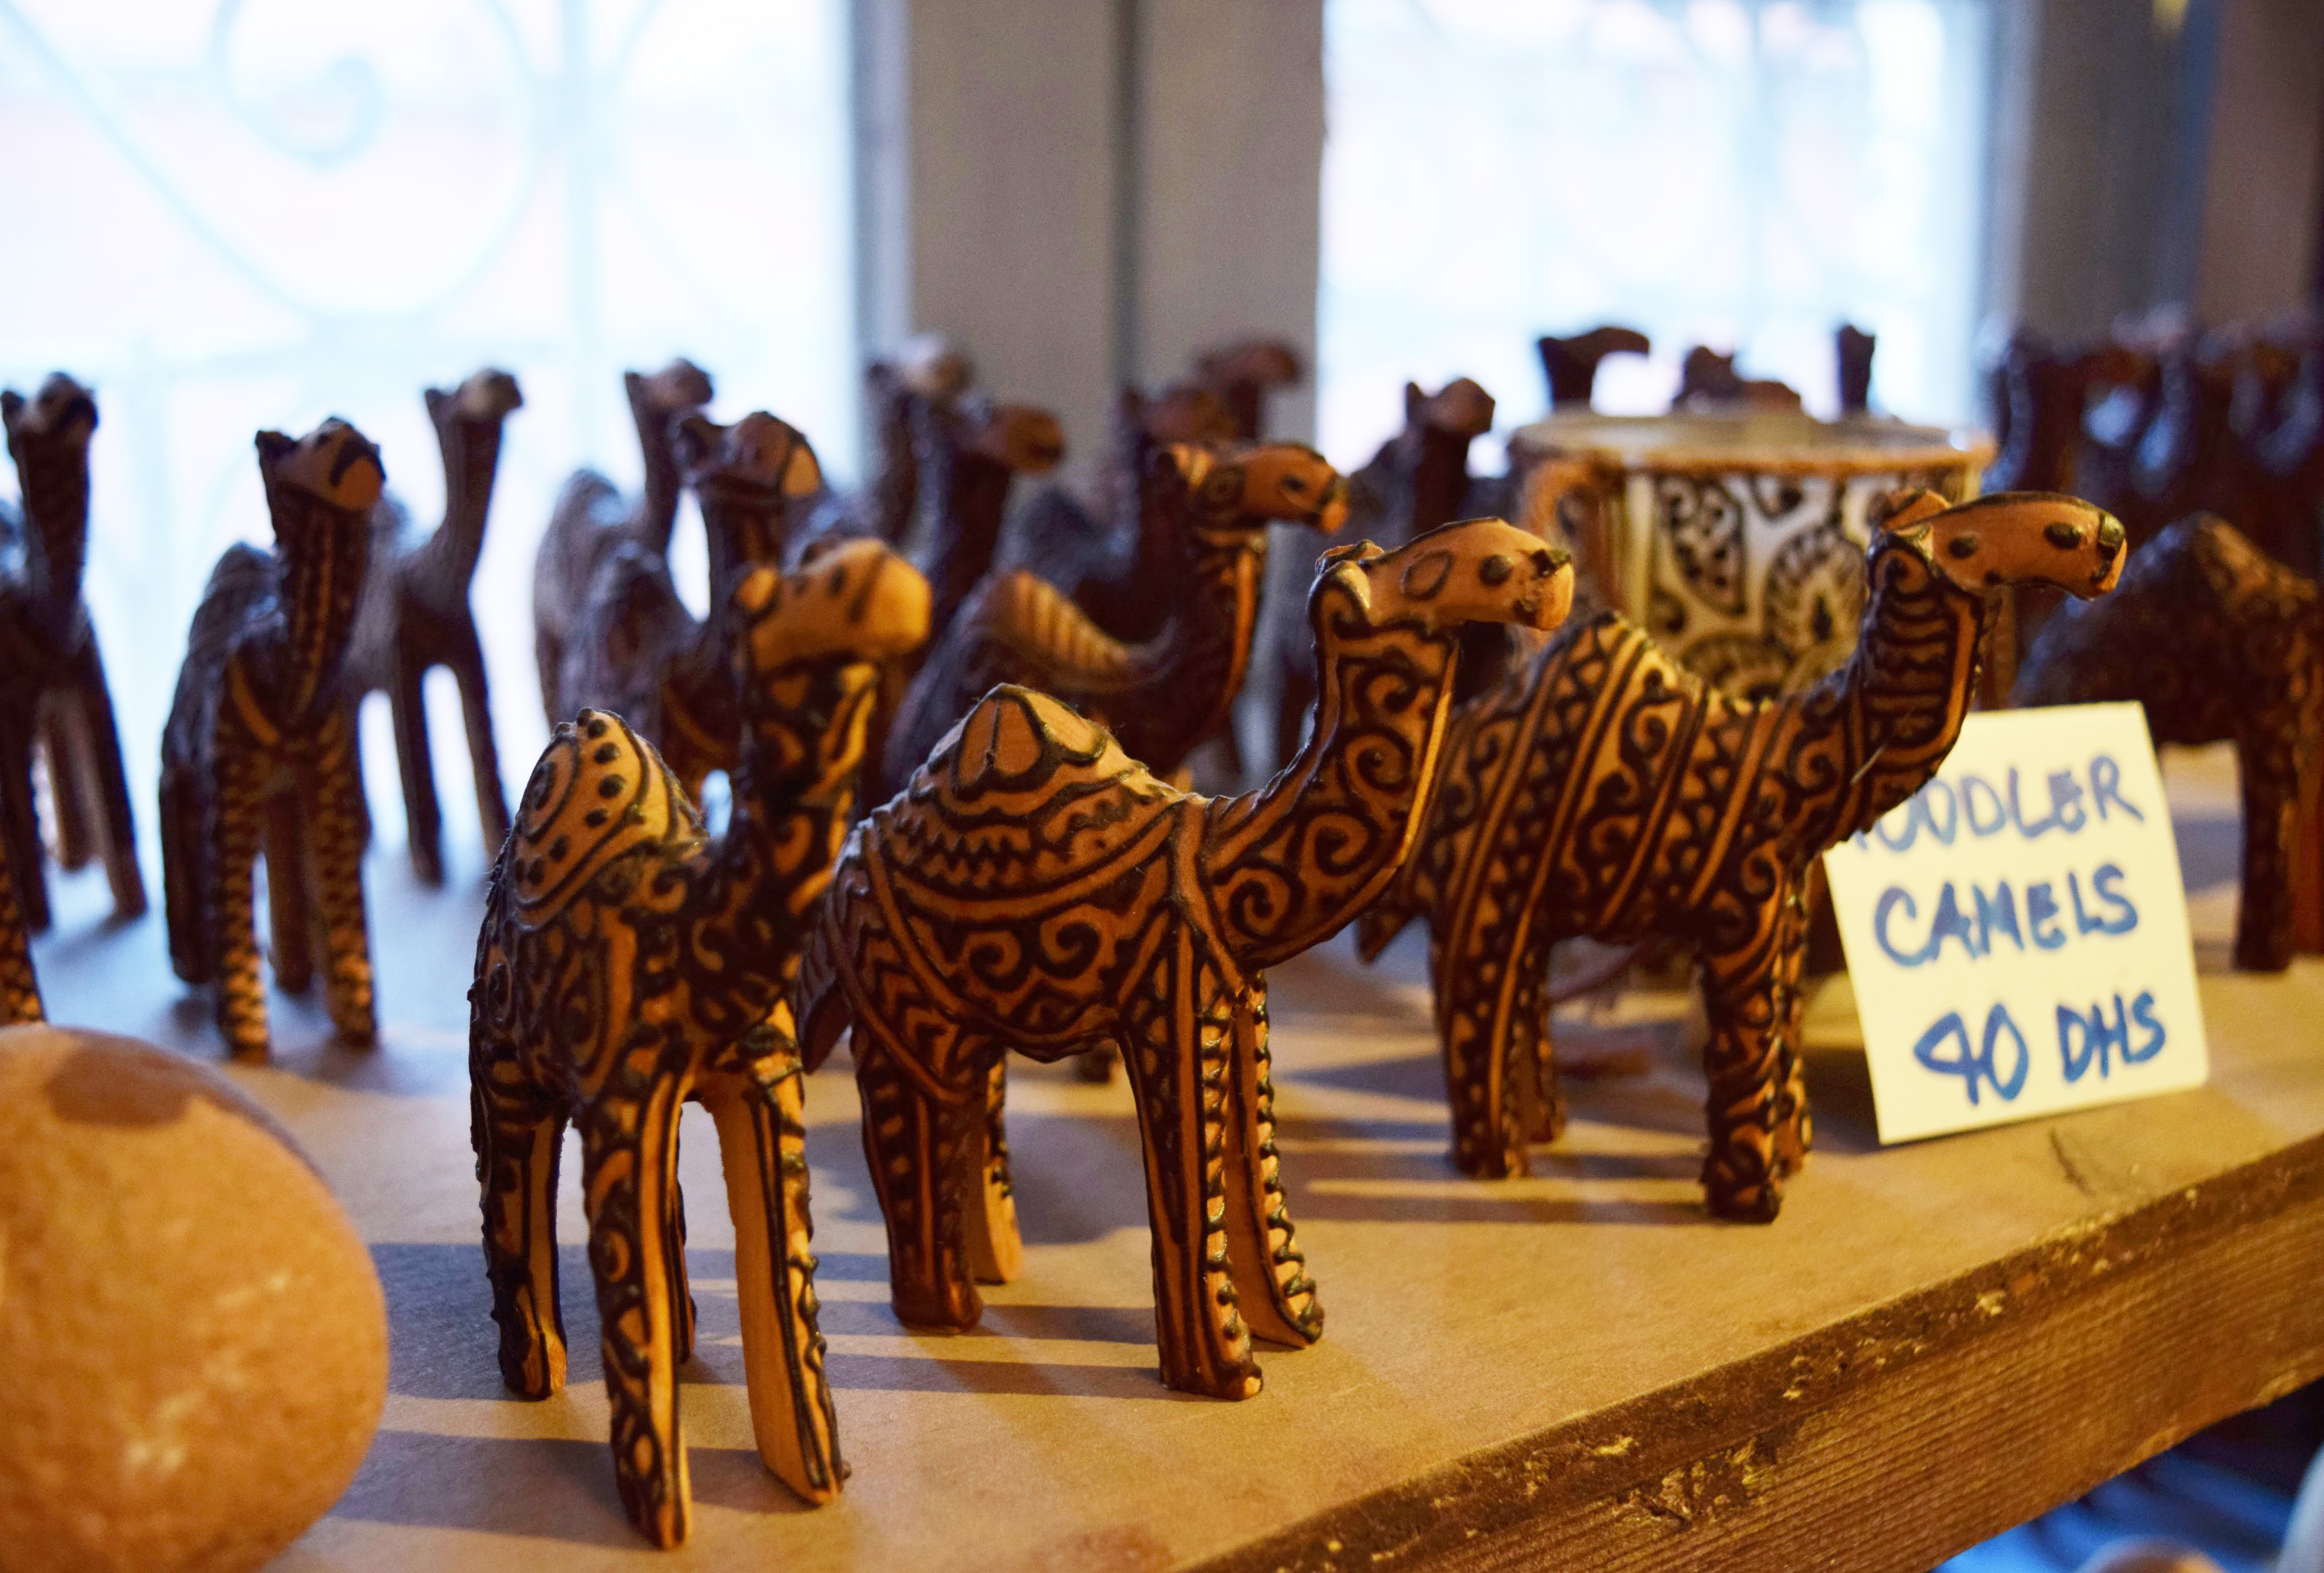 One of the many things the henna artists apply their craft to, these hand-carved camels are the best selling items in the cafe's boutique. Photo by Regan Reeck.